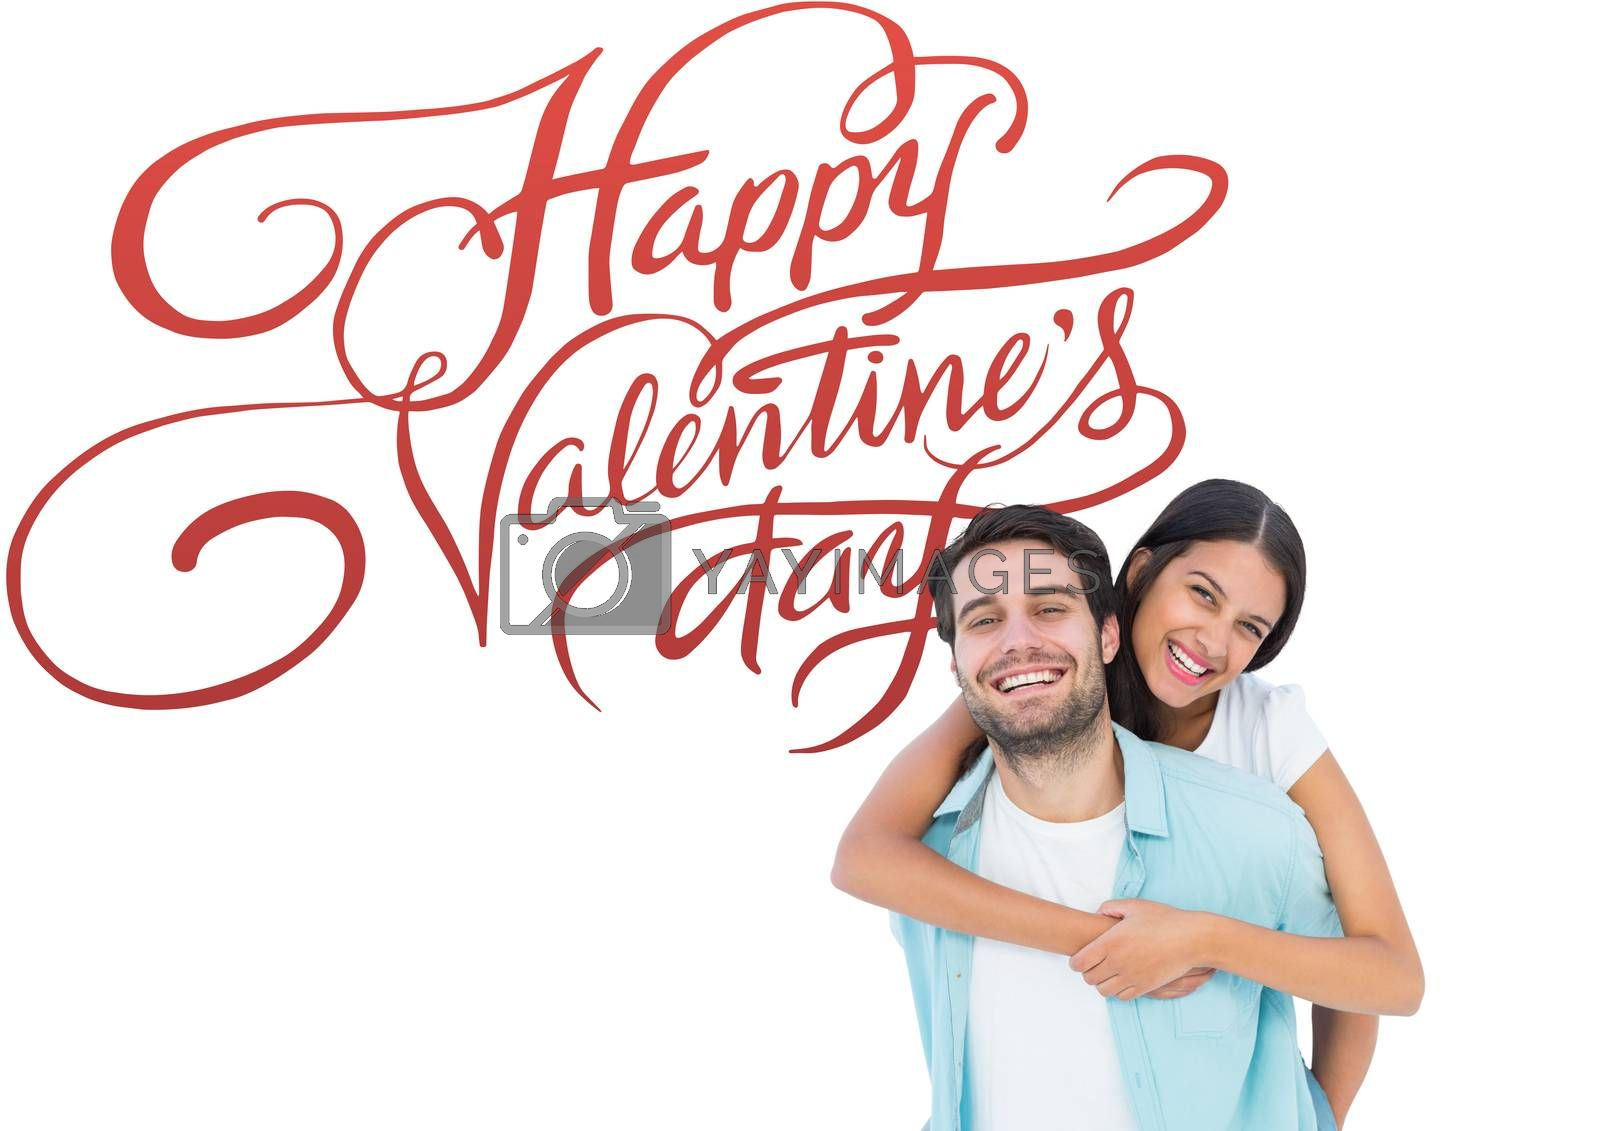 Happy casual man giving pretty girlfriend piggy back against happy valentines day